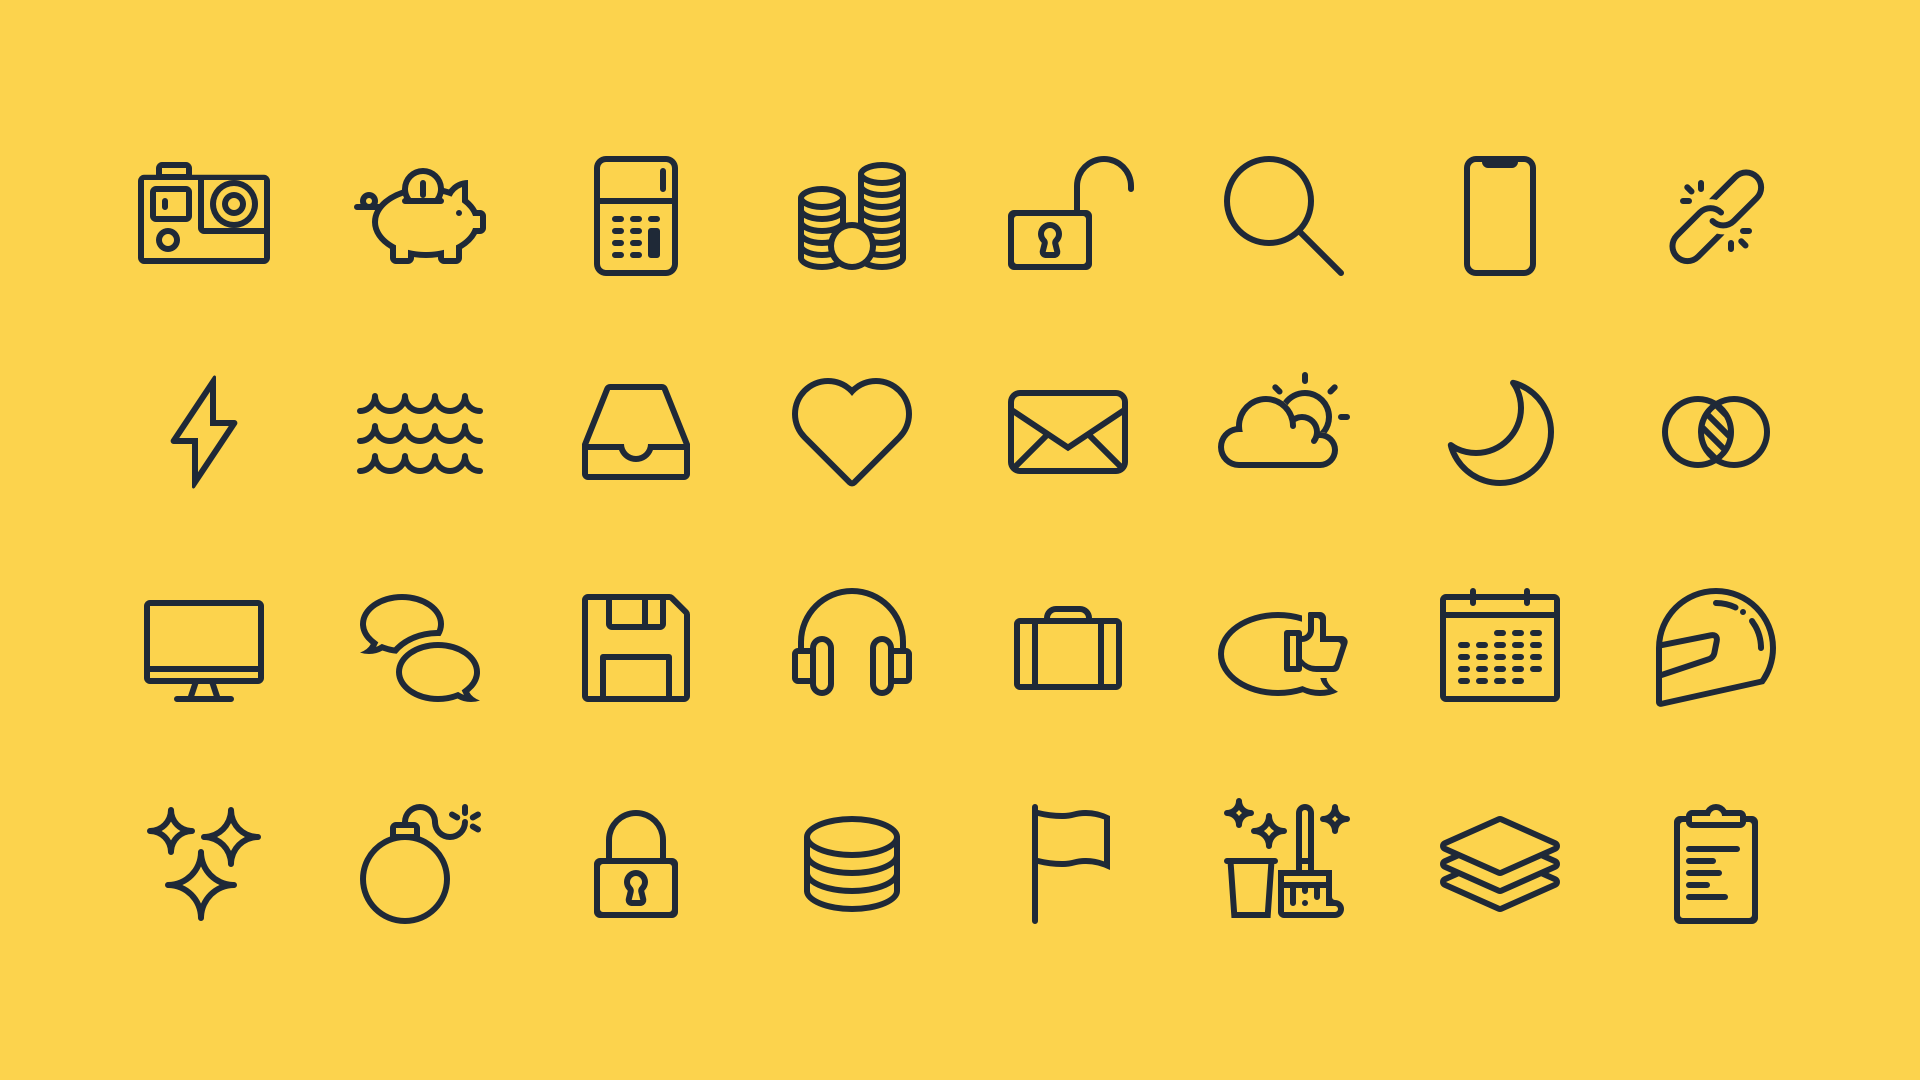 A preview of some icons included in the set.